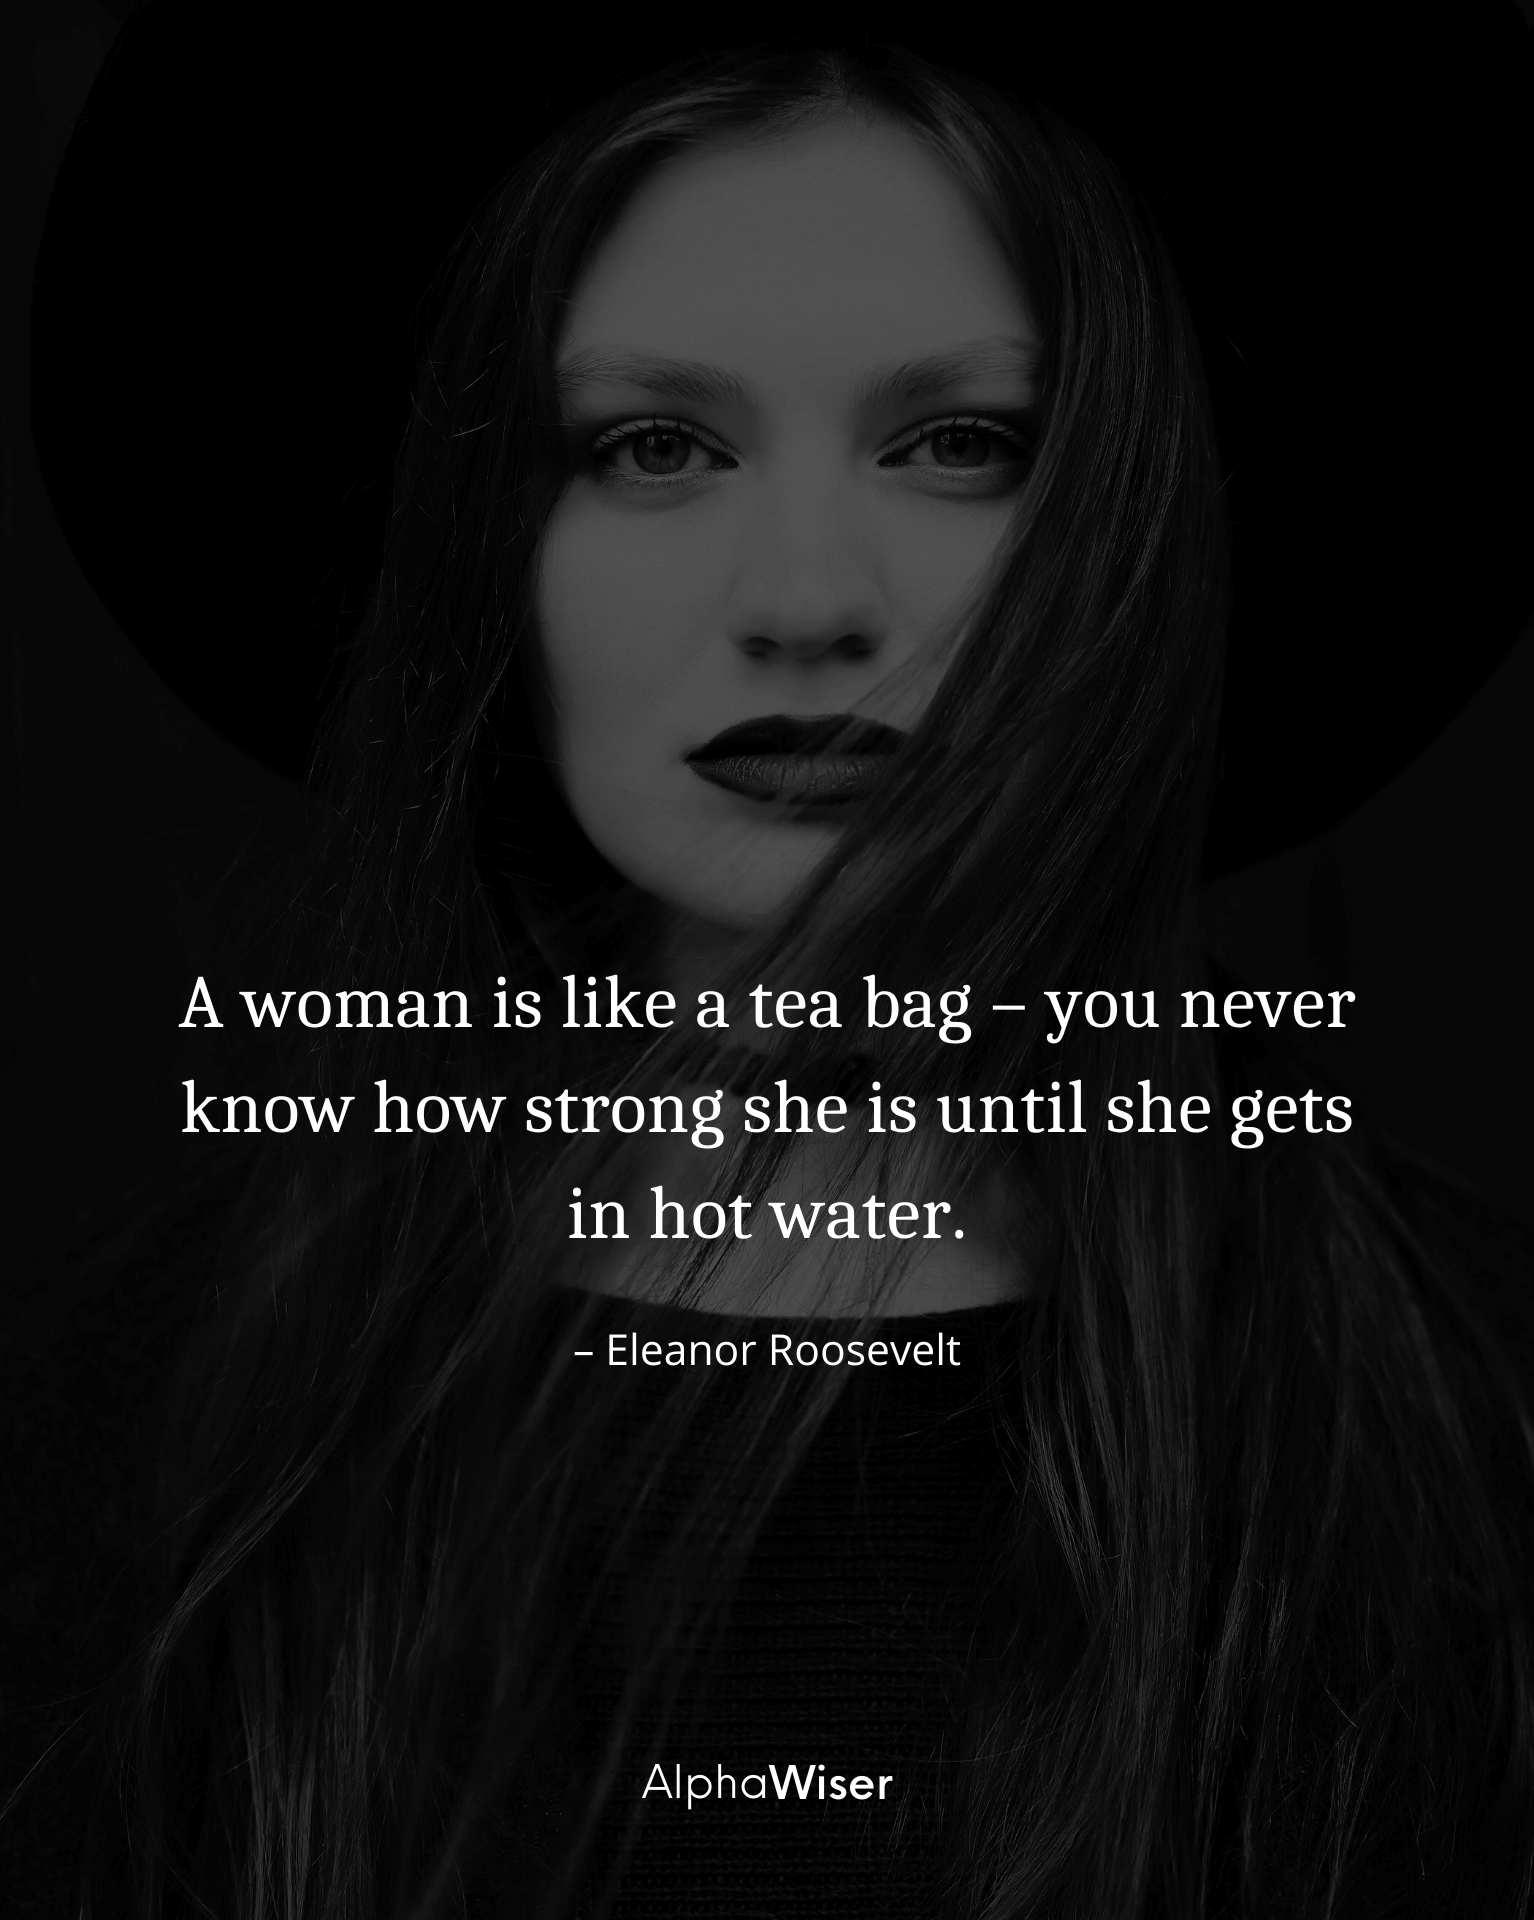 A woman is like a tea bag – you never know how strong she is until she gets in hot water.